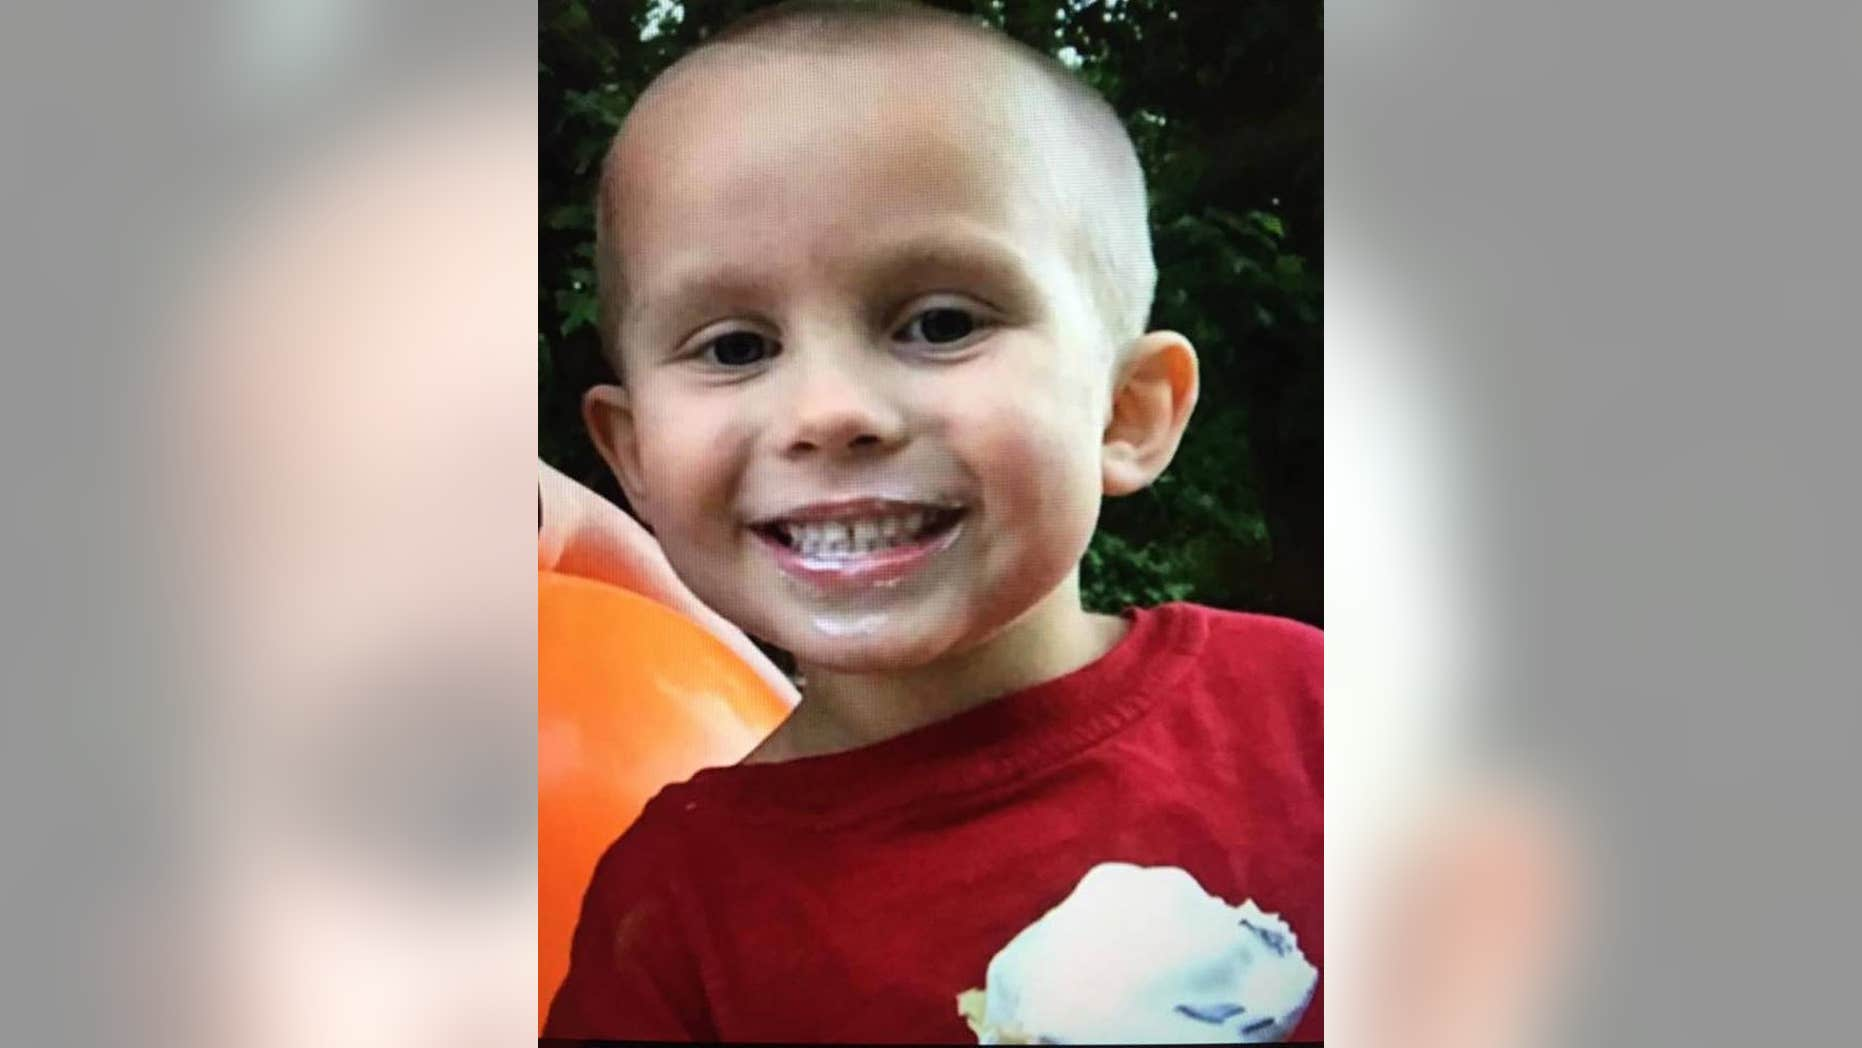 James Spoonamore, 5, had been missing for days before his body was found.